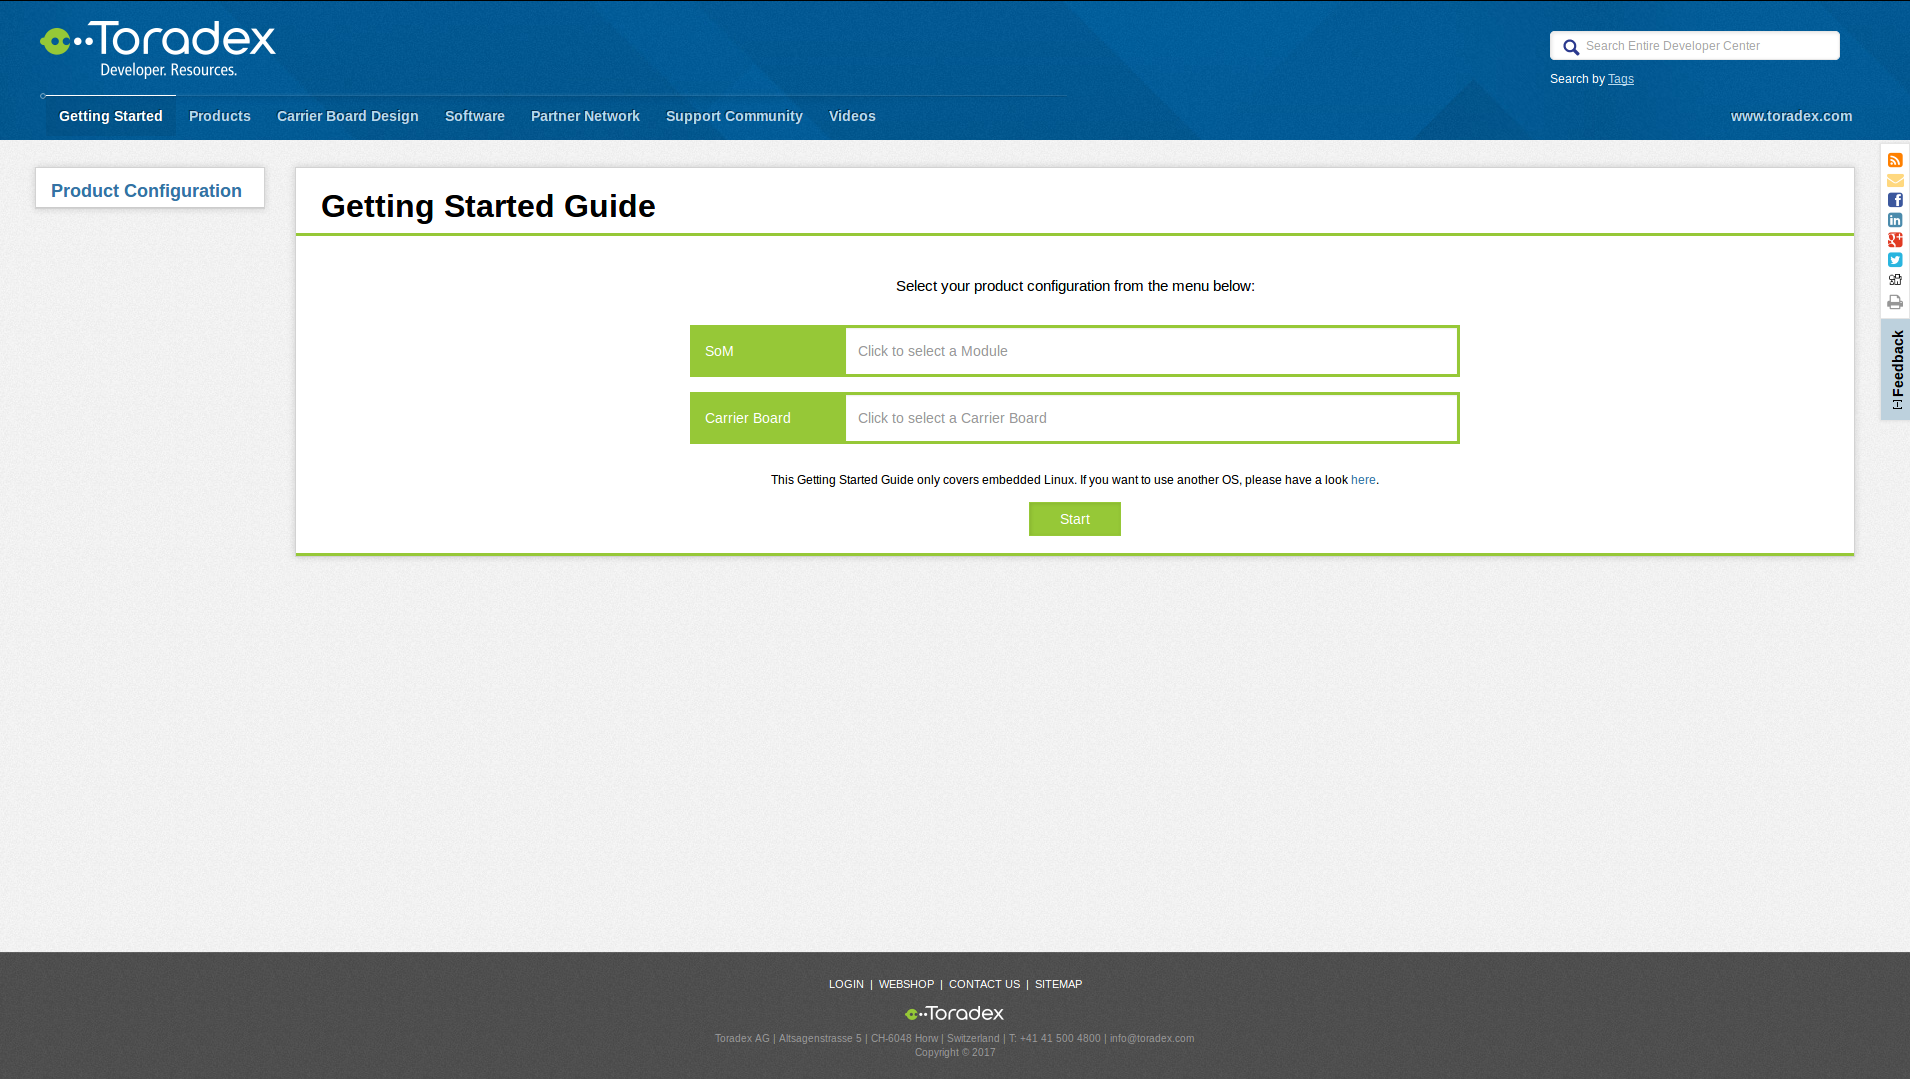 Getting Started tab